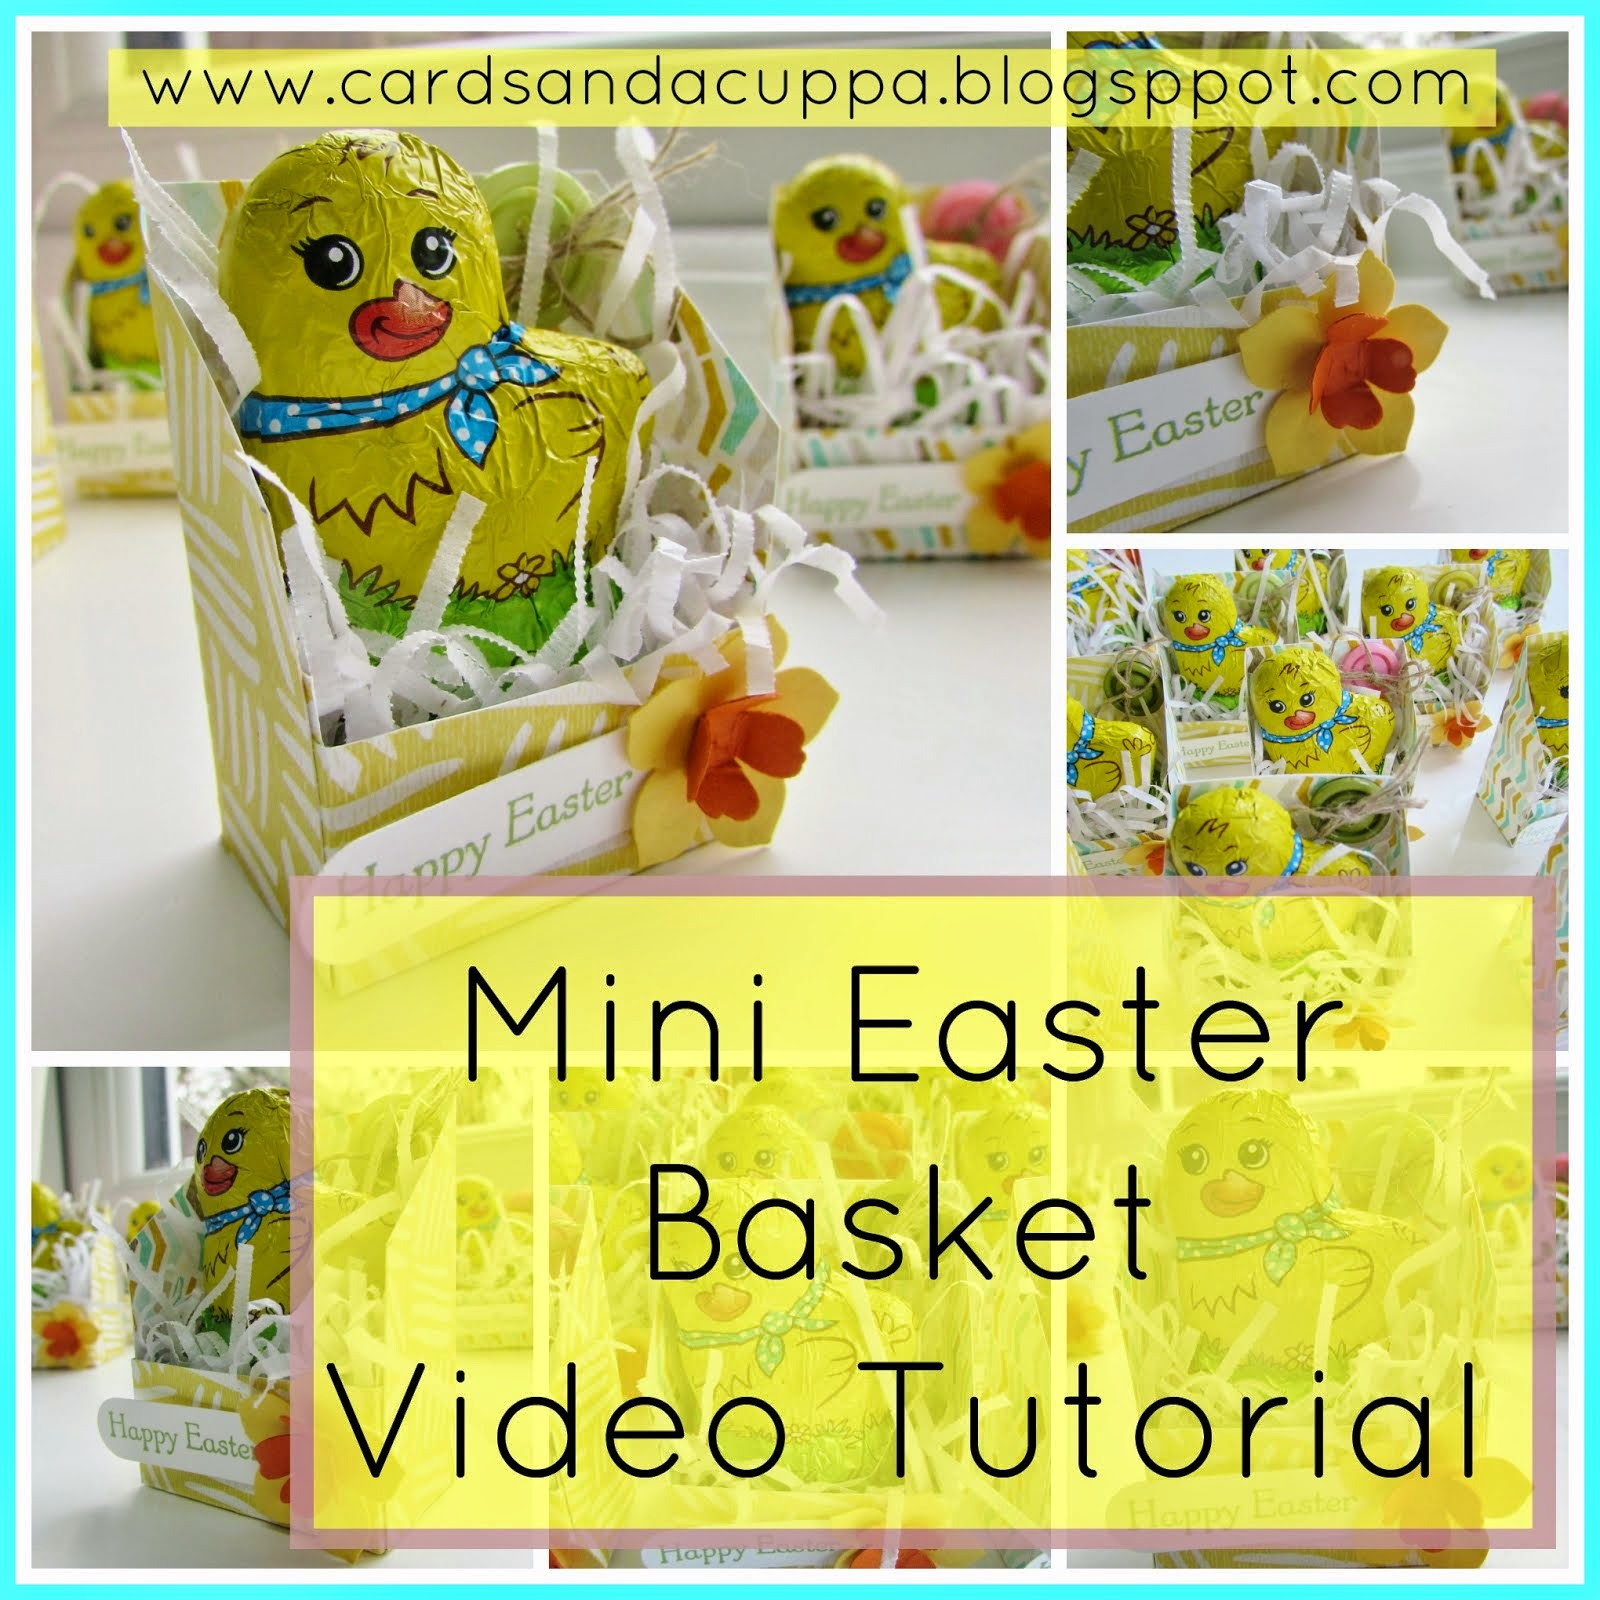 Mini Easter basket using just paper and card